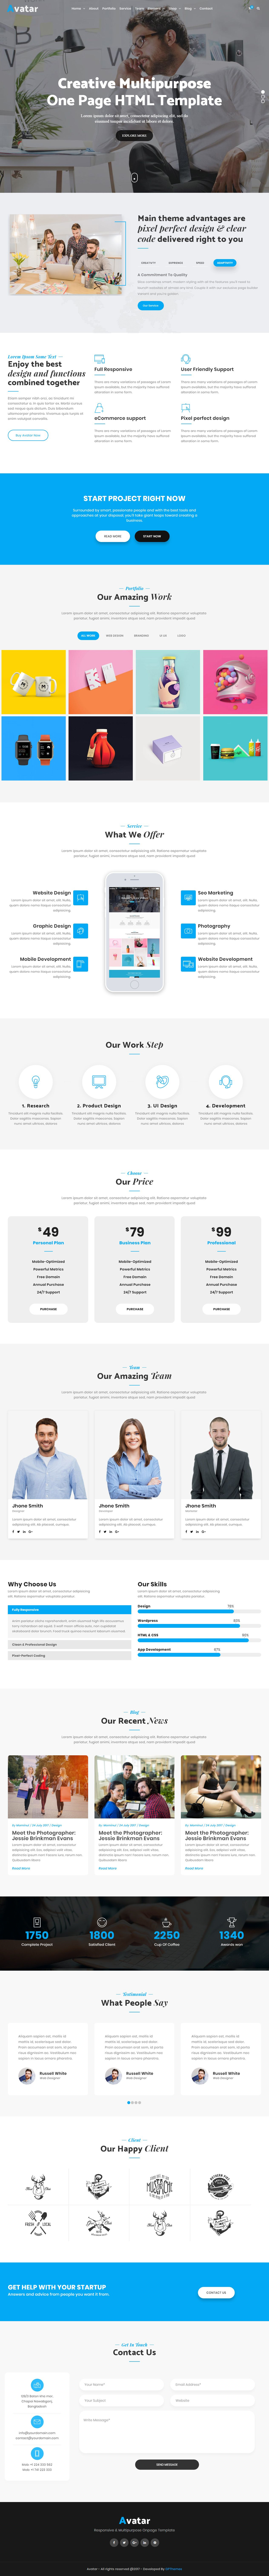 Pin by Dejan Jaredic on web design Pinterest